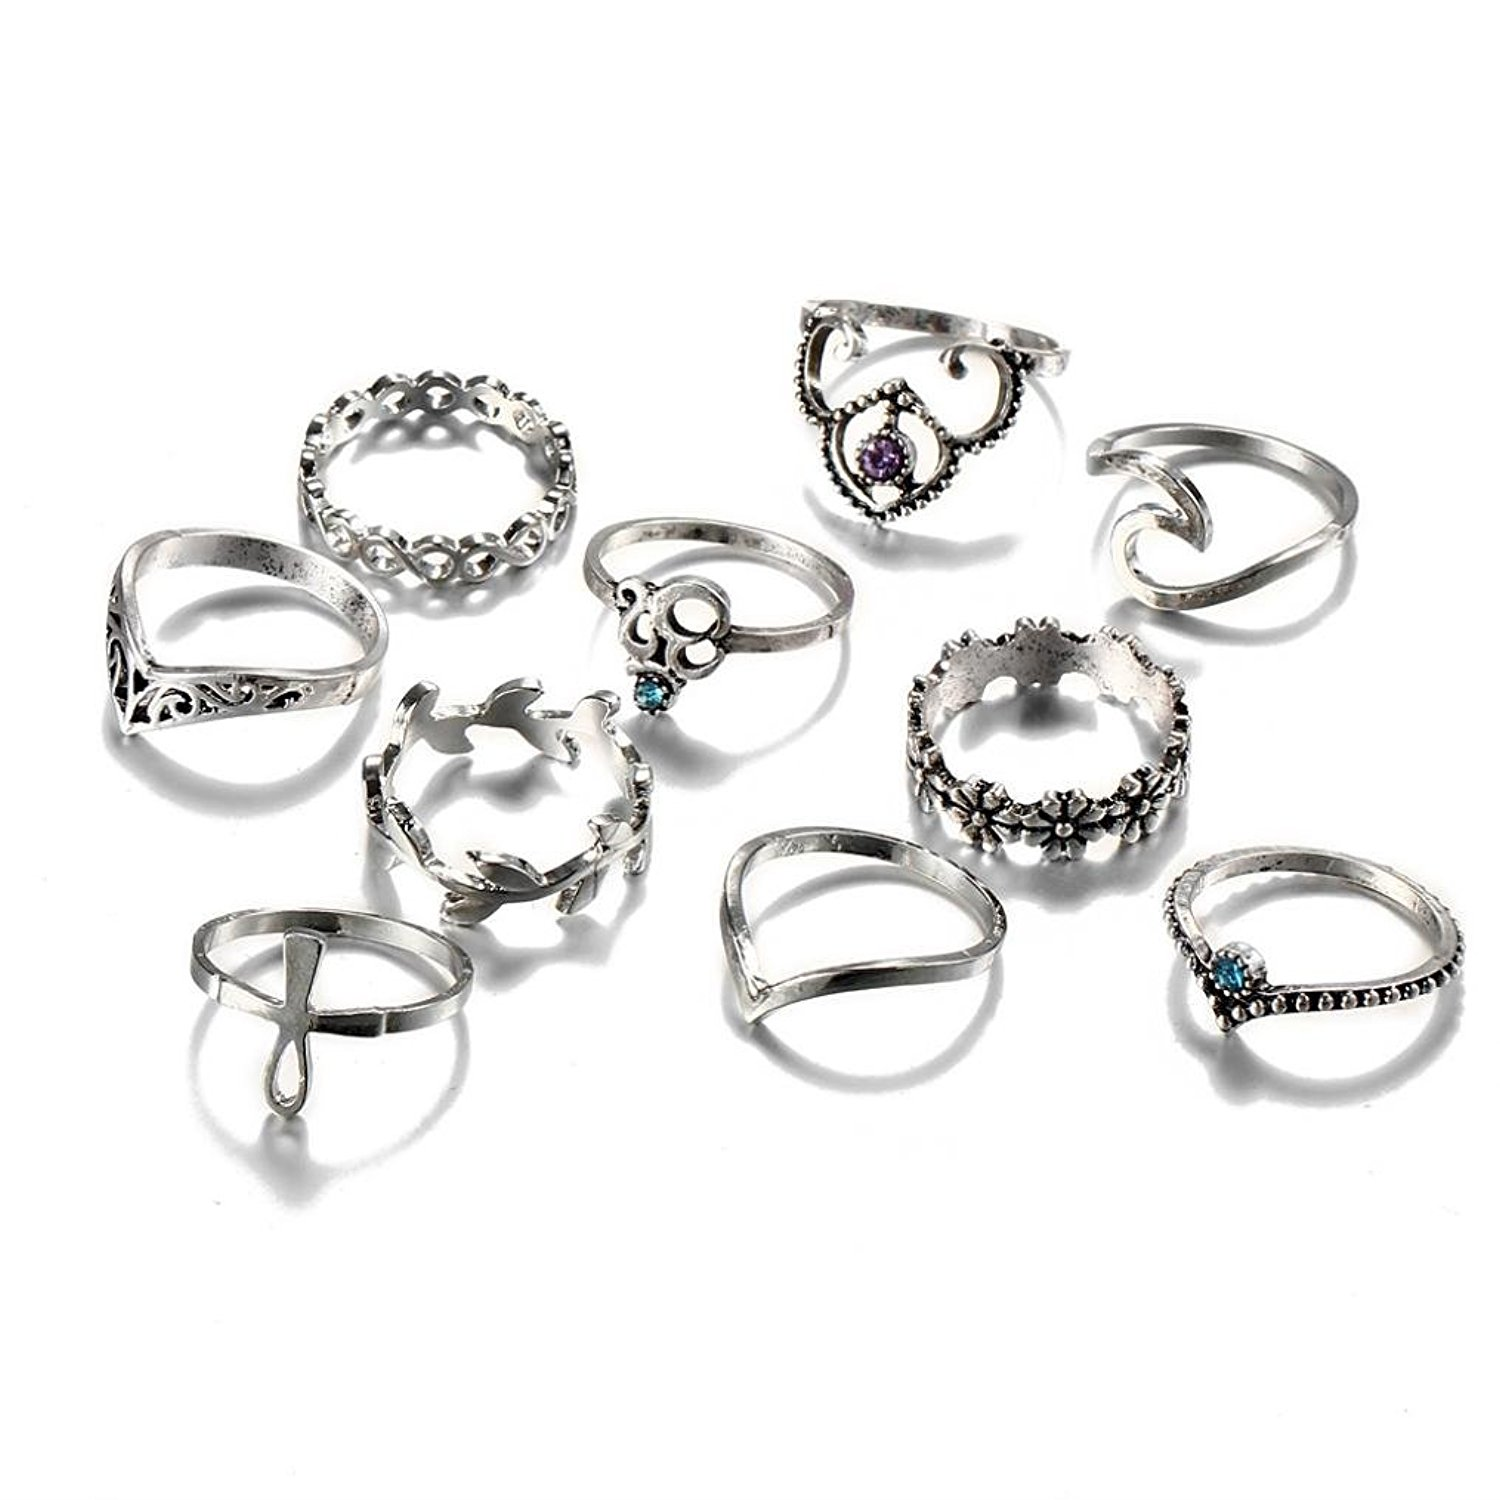 Nmch Womens Rings,10pcs/Set Ring Jewelry Sets,Fashion Bohemian Vintage Silver Stack Rings Above Knuckle Blue Rings